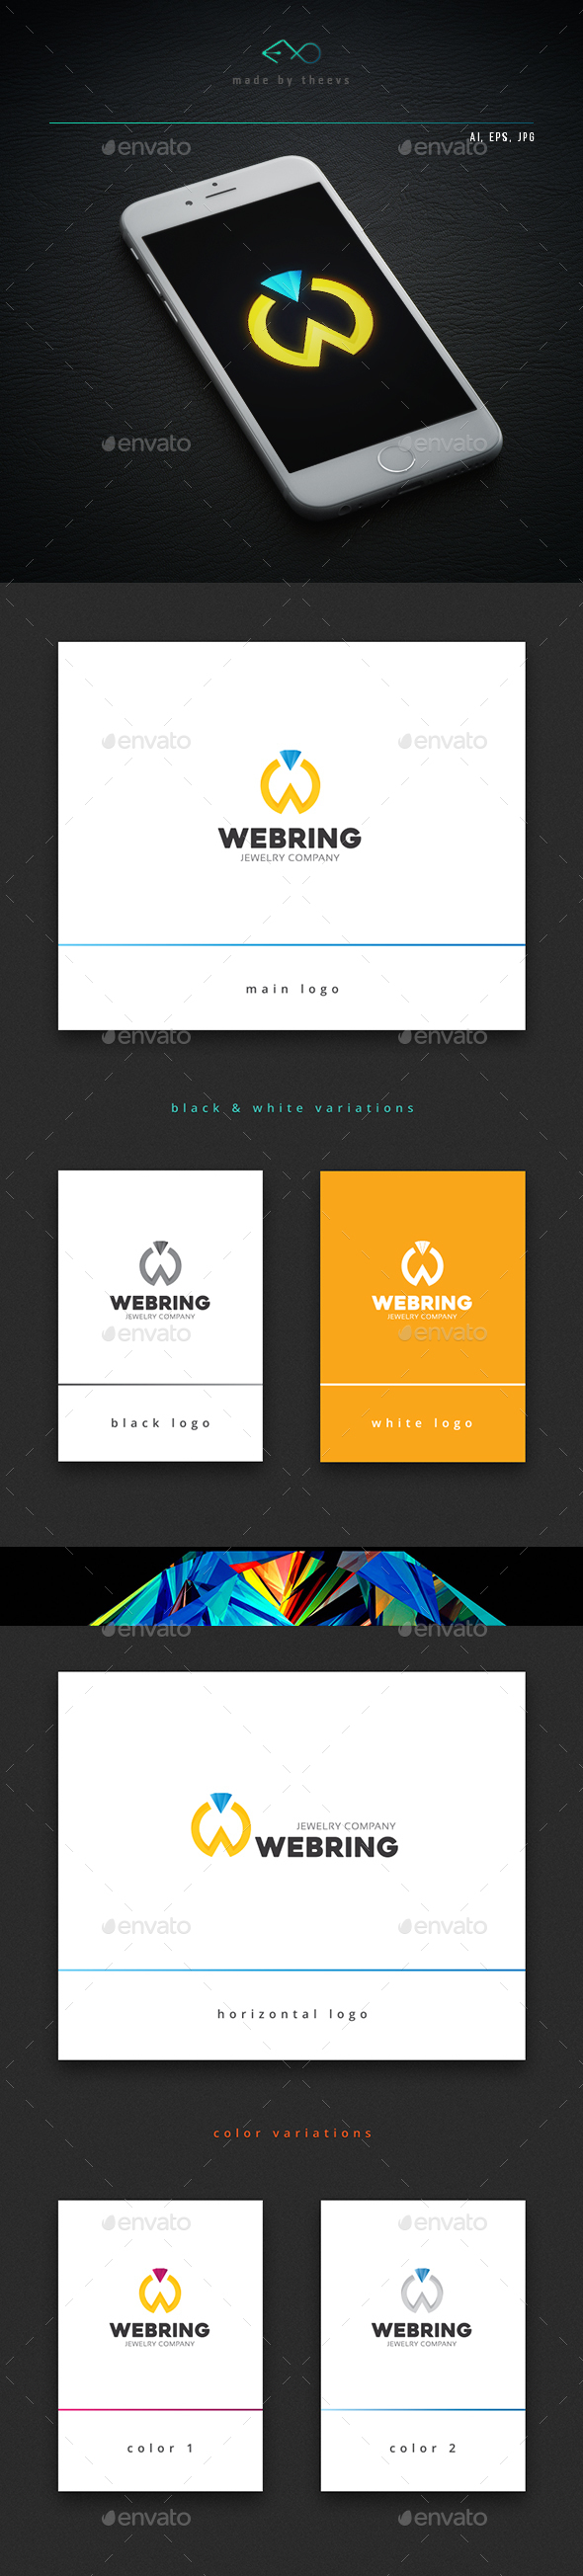 Webring - Objects Logo Templates